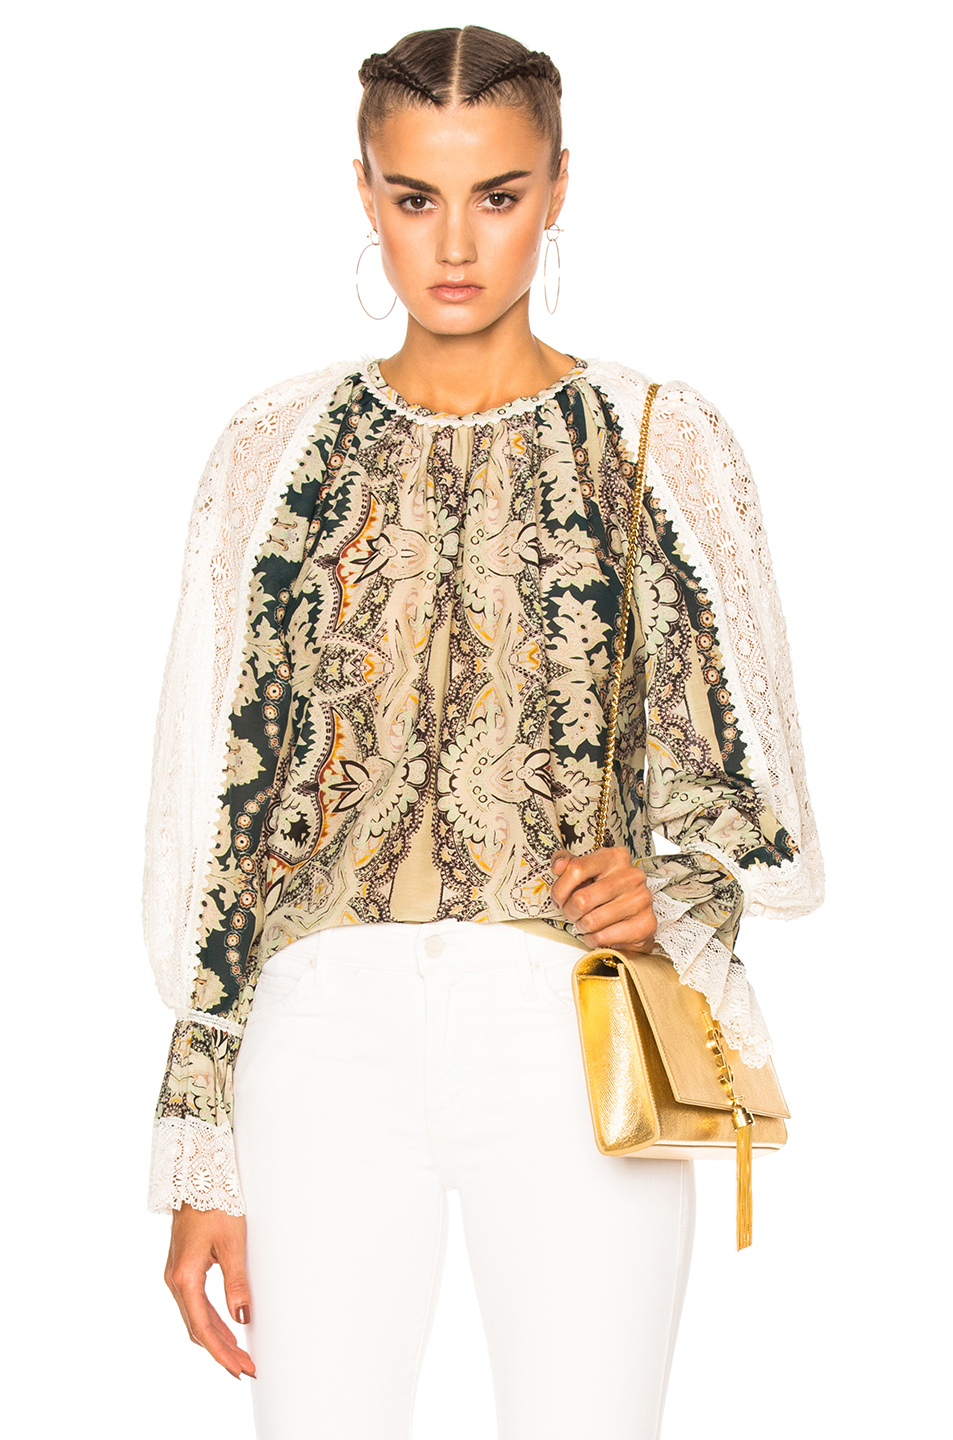 Etro Printed Voluminous Blouse in Floral,Green